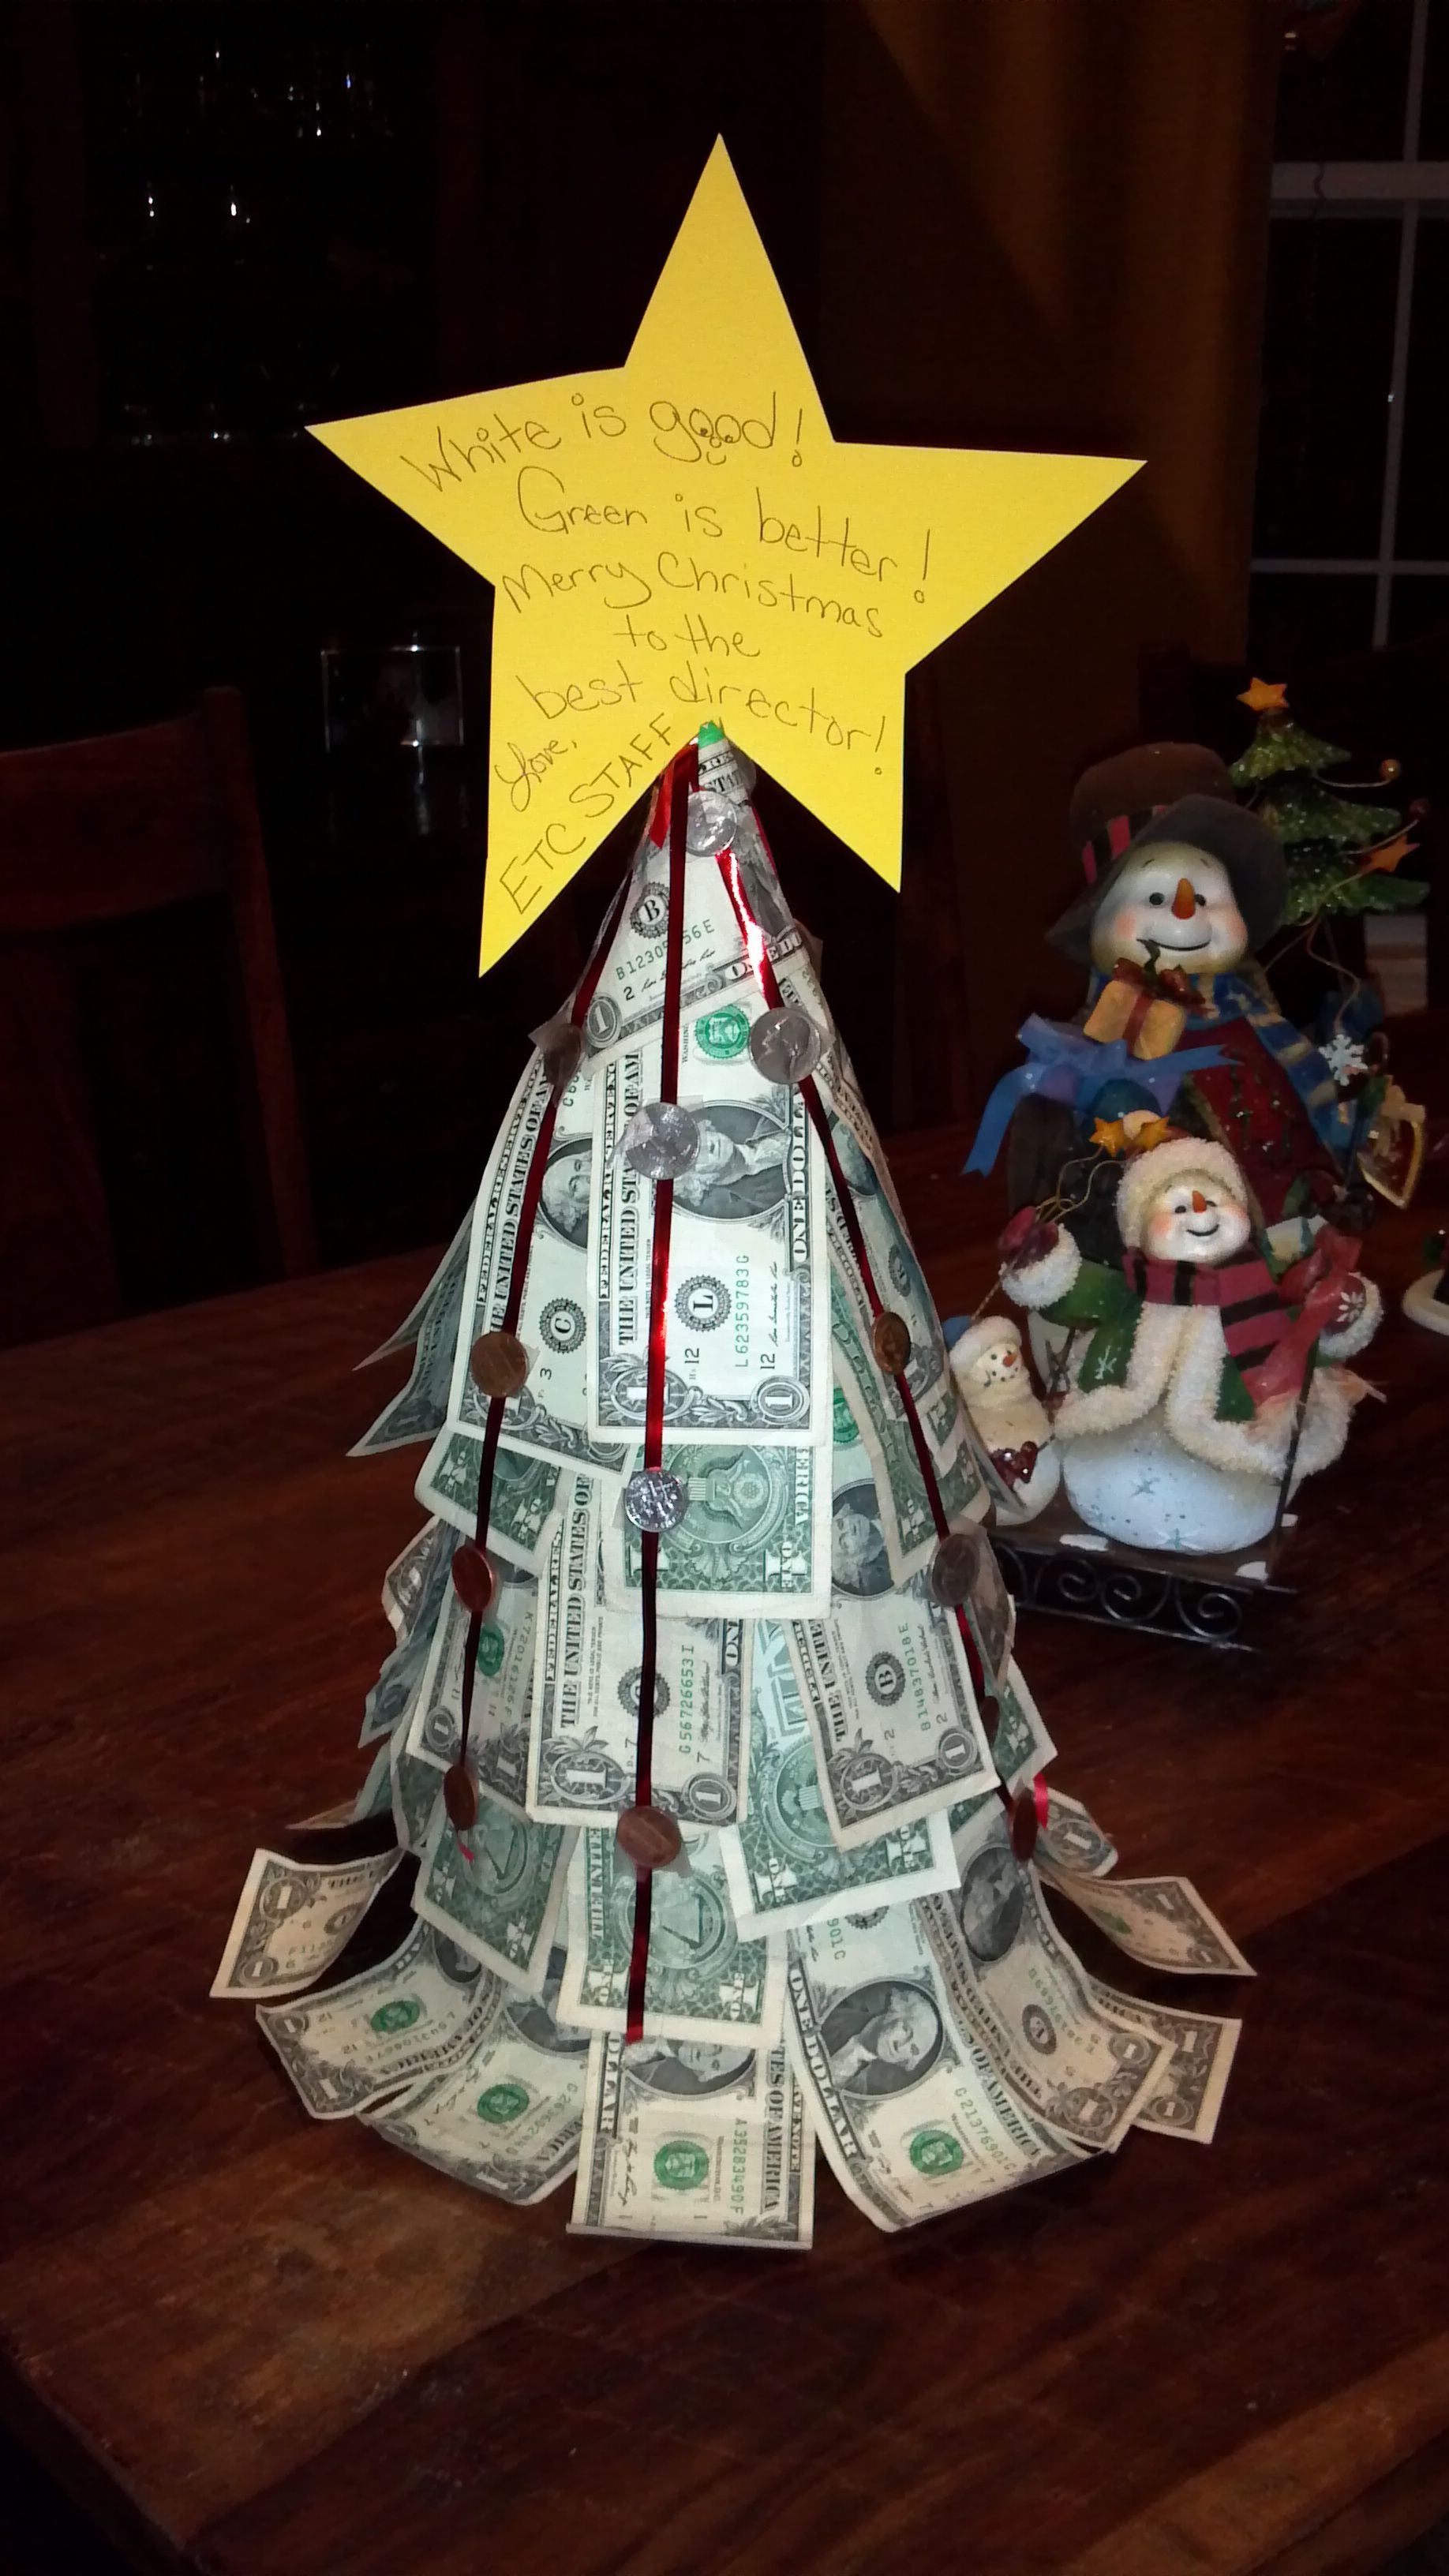 Christmas money treestead of gift cards for teacherske instead of gift cards for teacherske them a money treerland are coinsring garland through hole at top and tape to inside of tree negle Choice Image